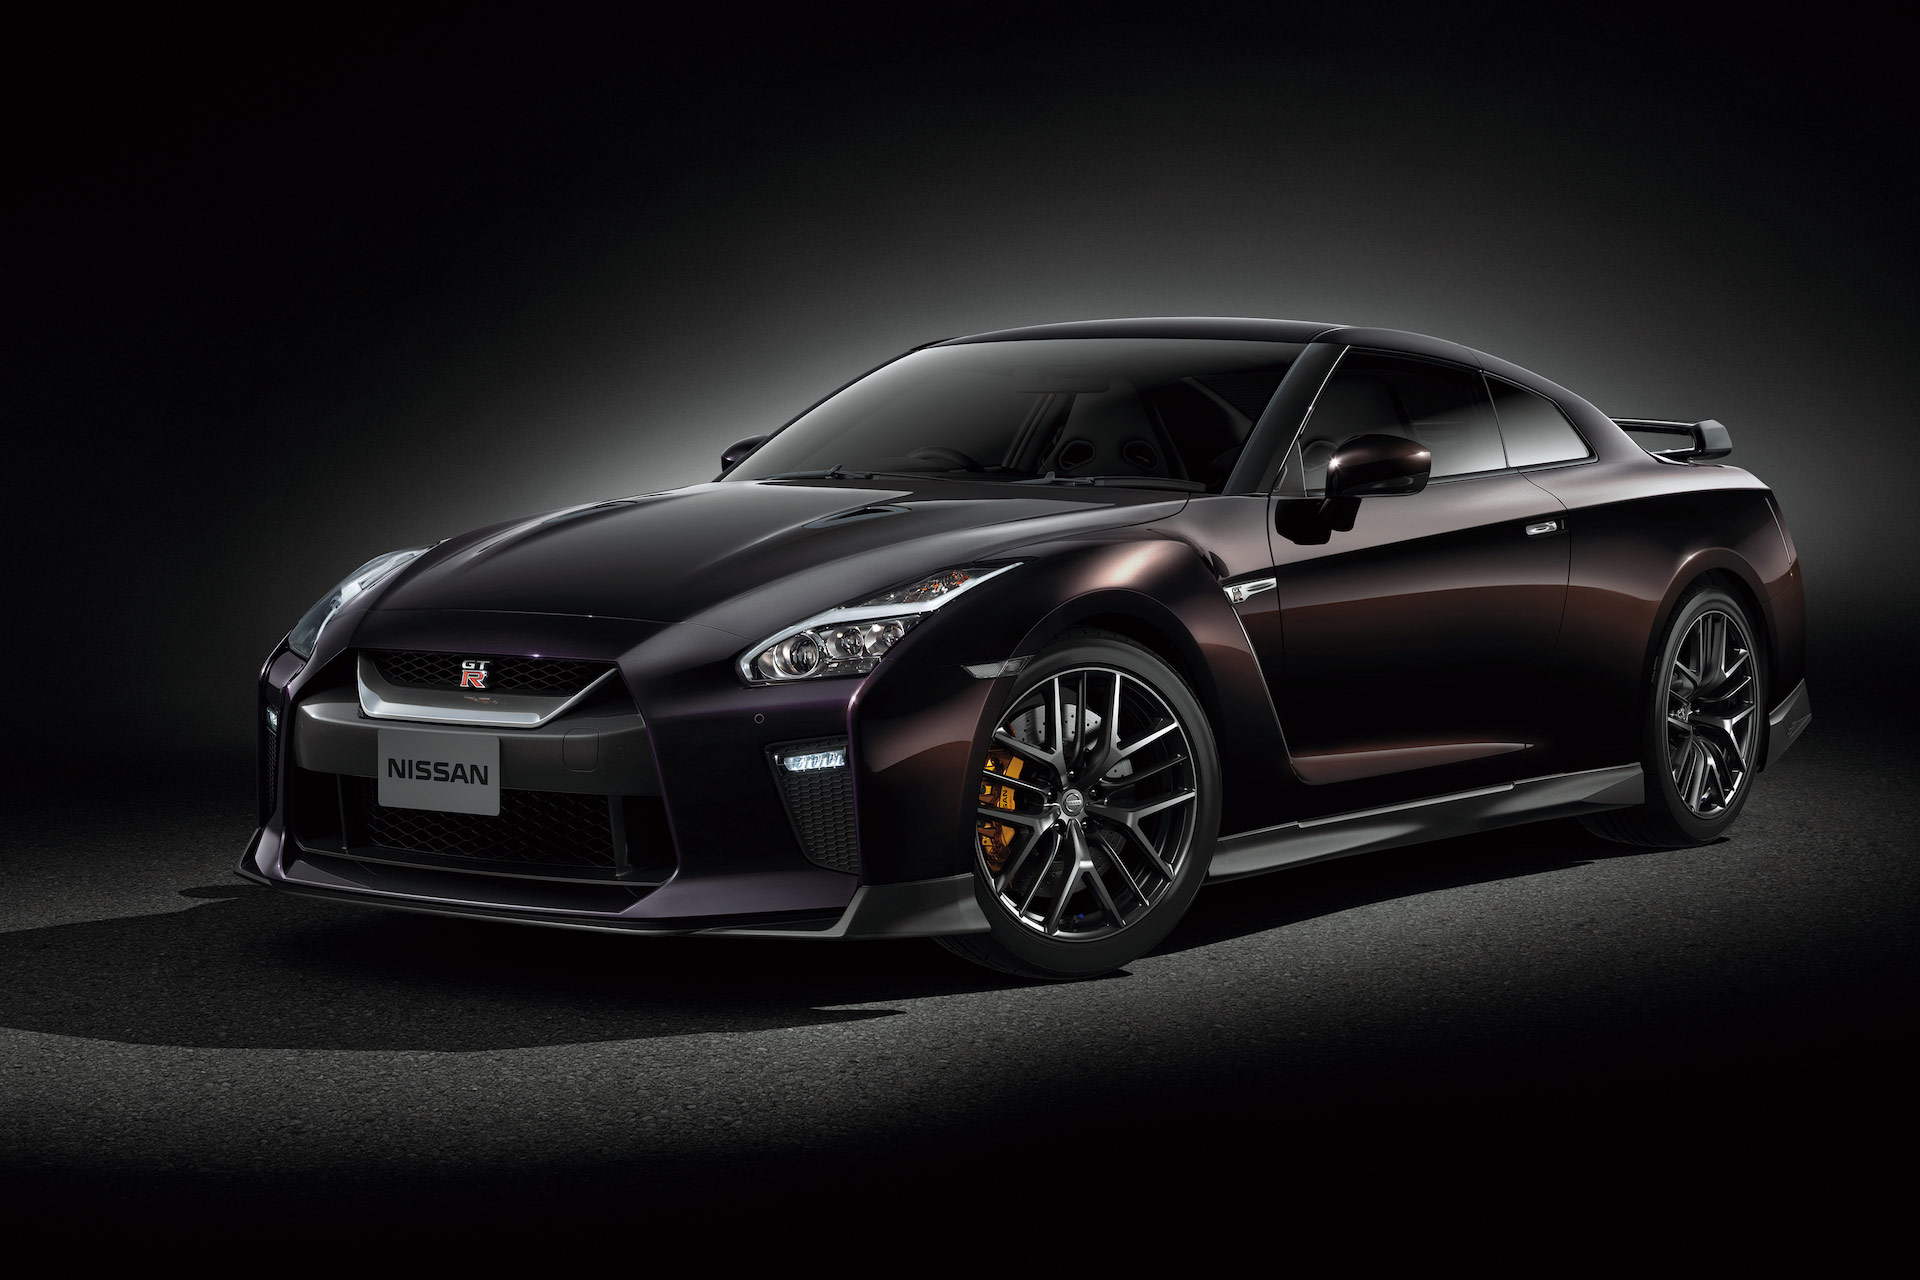 nissan announces special edition gt r to celebrate tennis ace naomi osaka motoring research. Black Bedroom Furniture Sets. Home Design Ideas